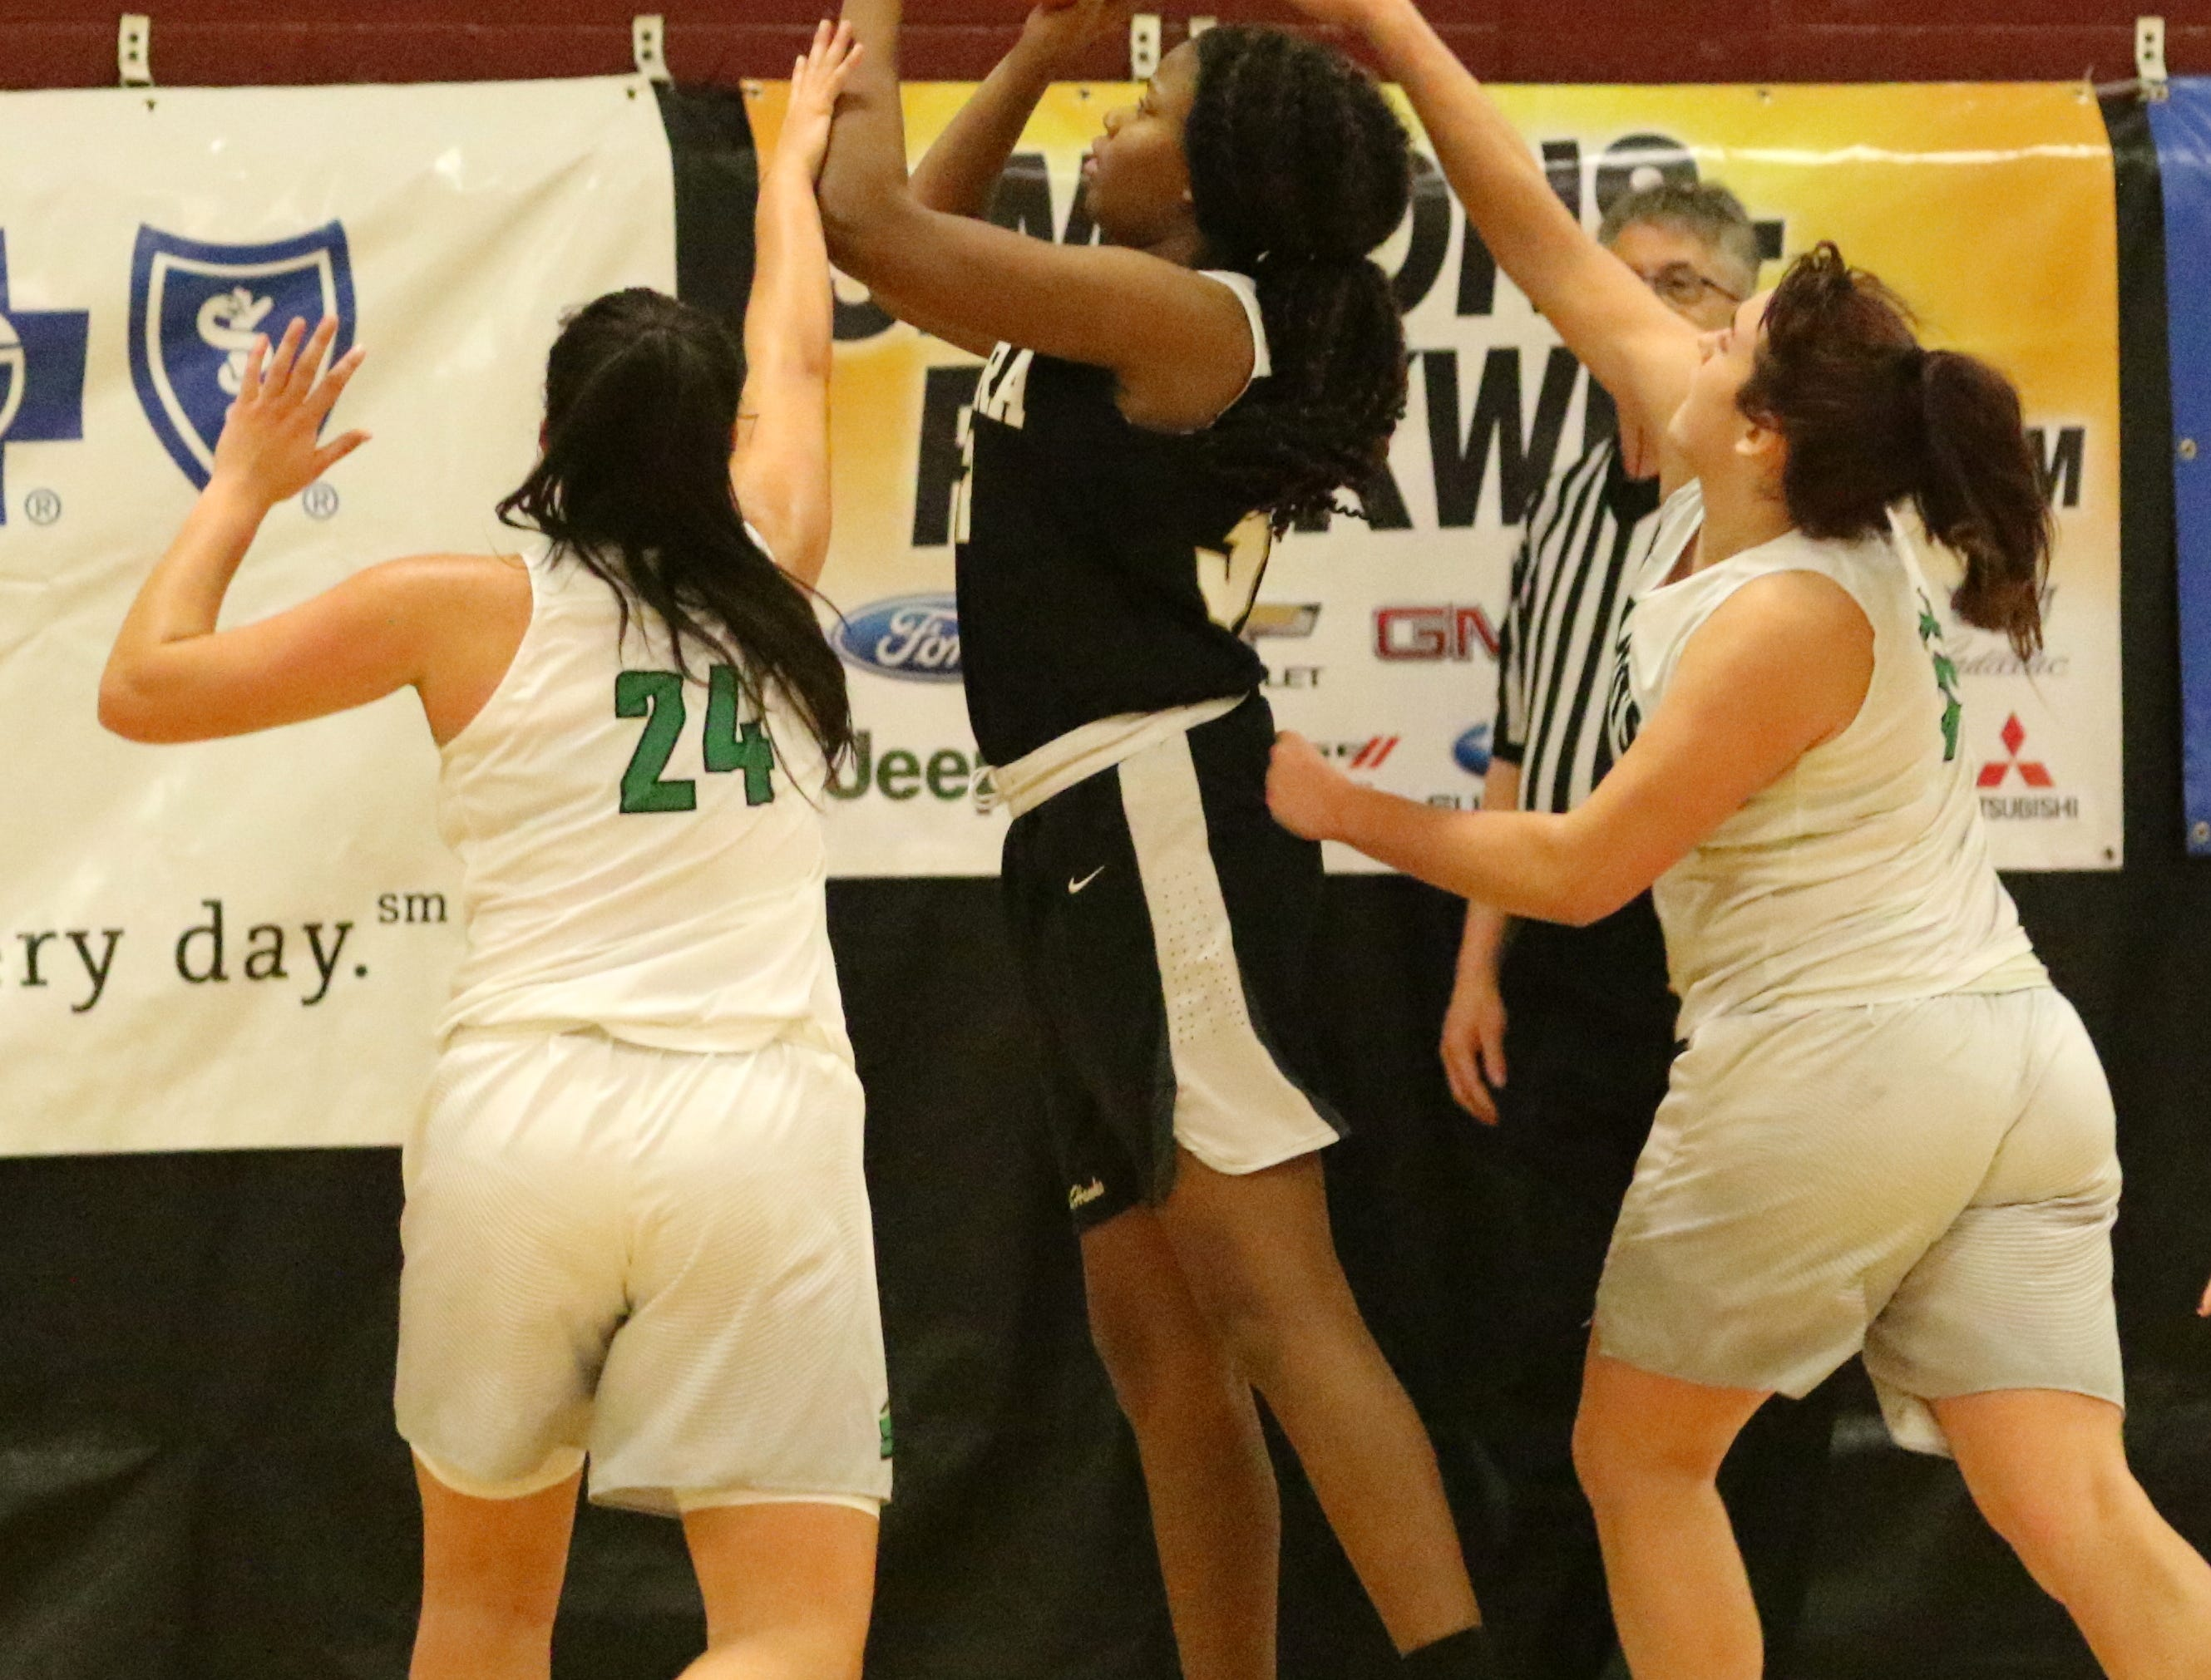 Cardinal O'Hara was a 62-58 winner over Binghamton Seton Catholic Central on Dec. 27, 2018 at the Josh Palmer Fund Elmira Holiday Inn Classic at Elmira High School.